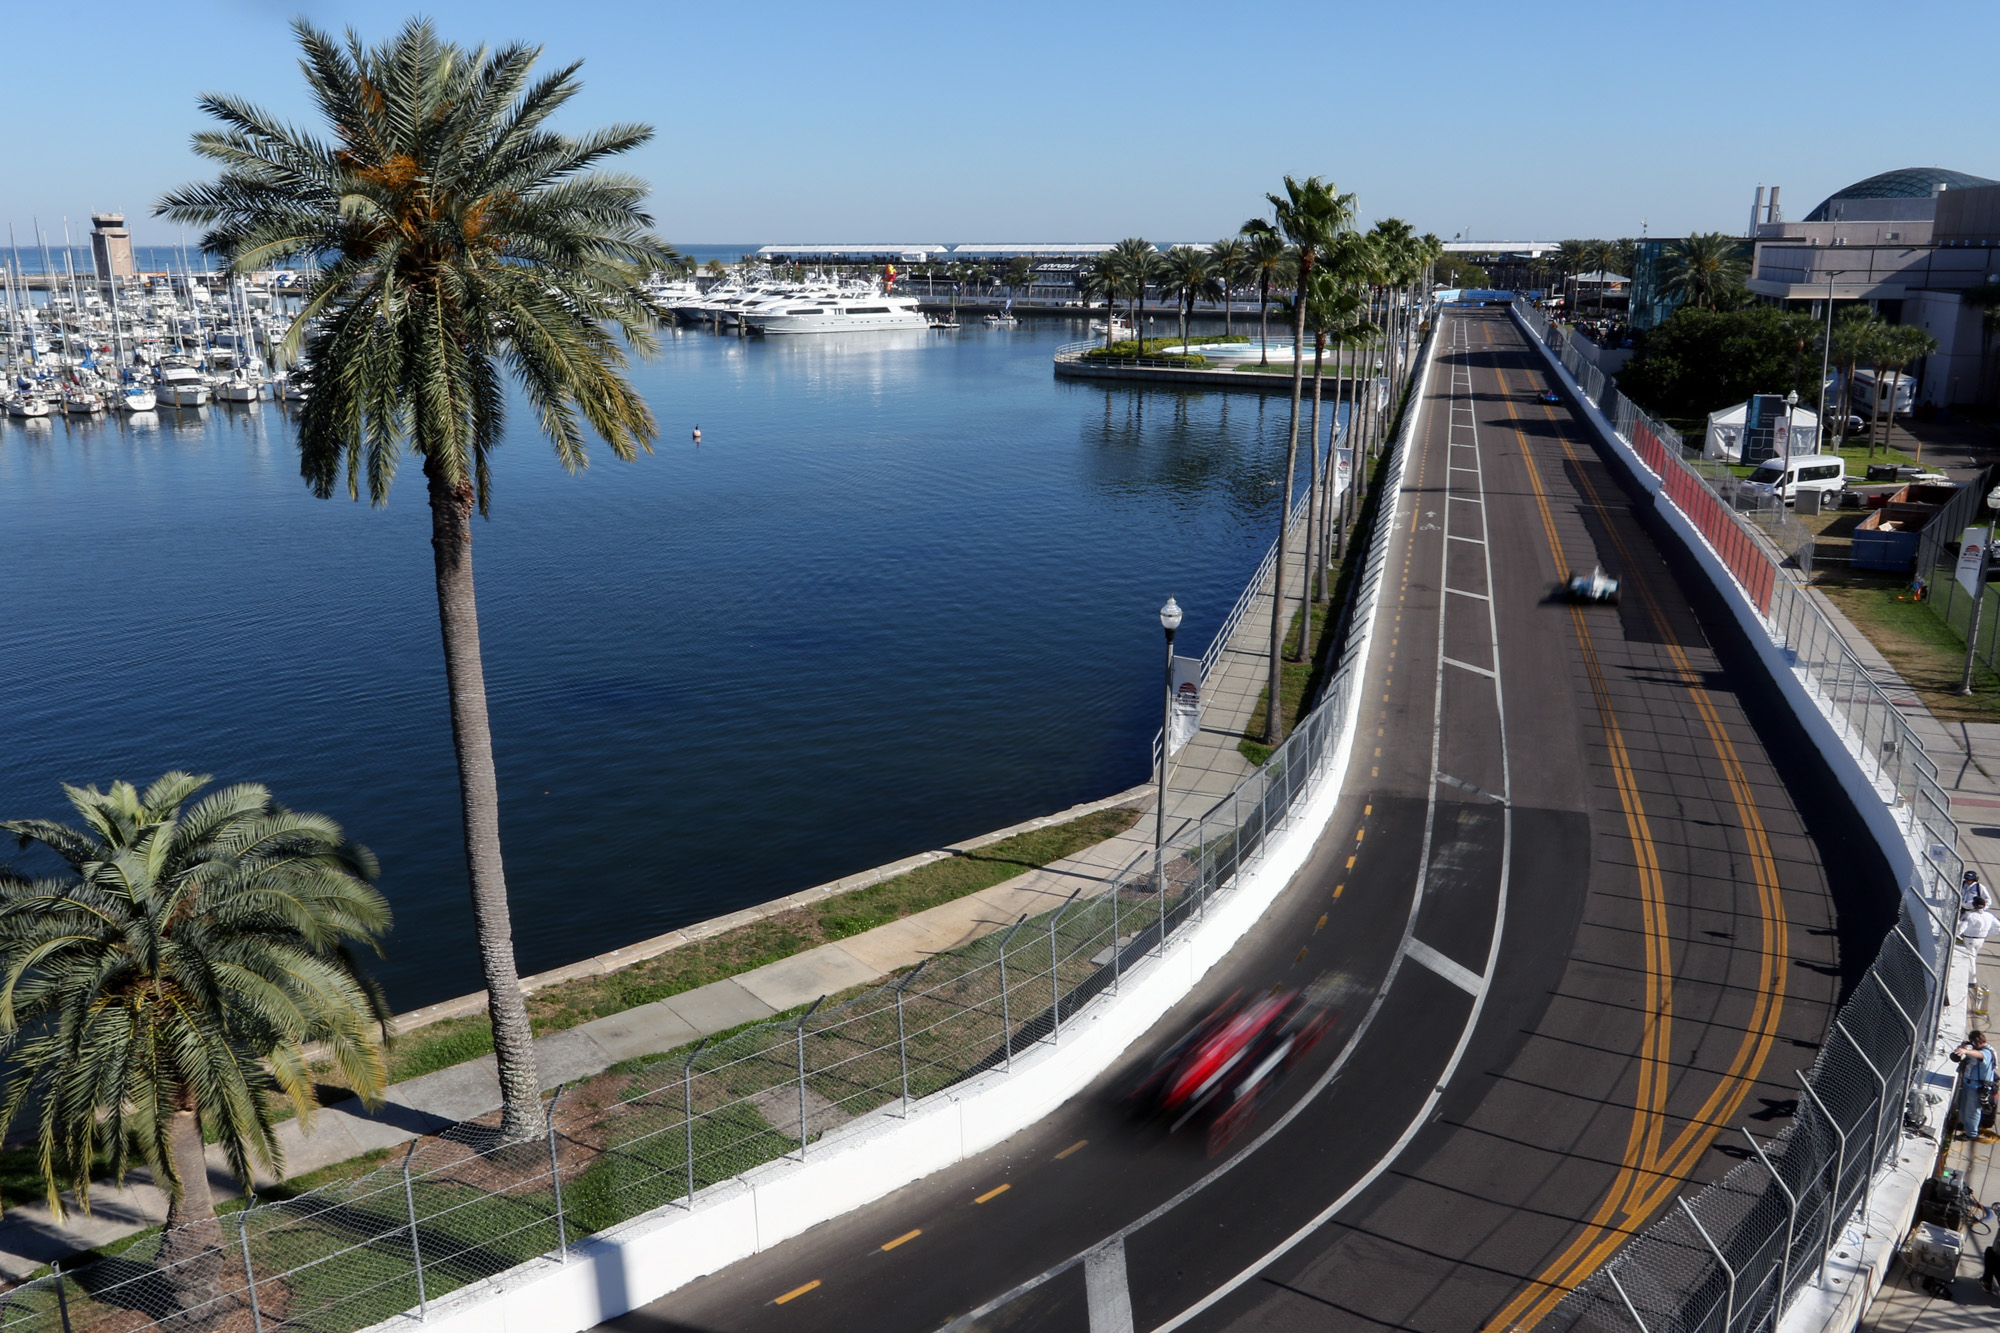 Drivers whip around the waterfront curves during IndyCar practice./ANDREW J. KRAMER